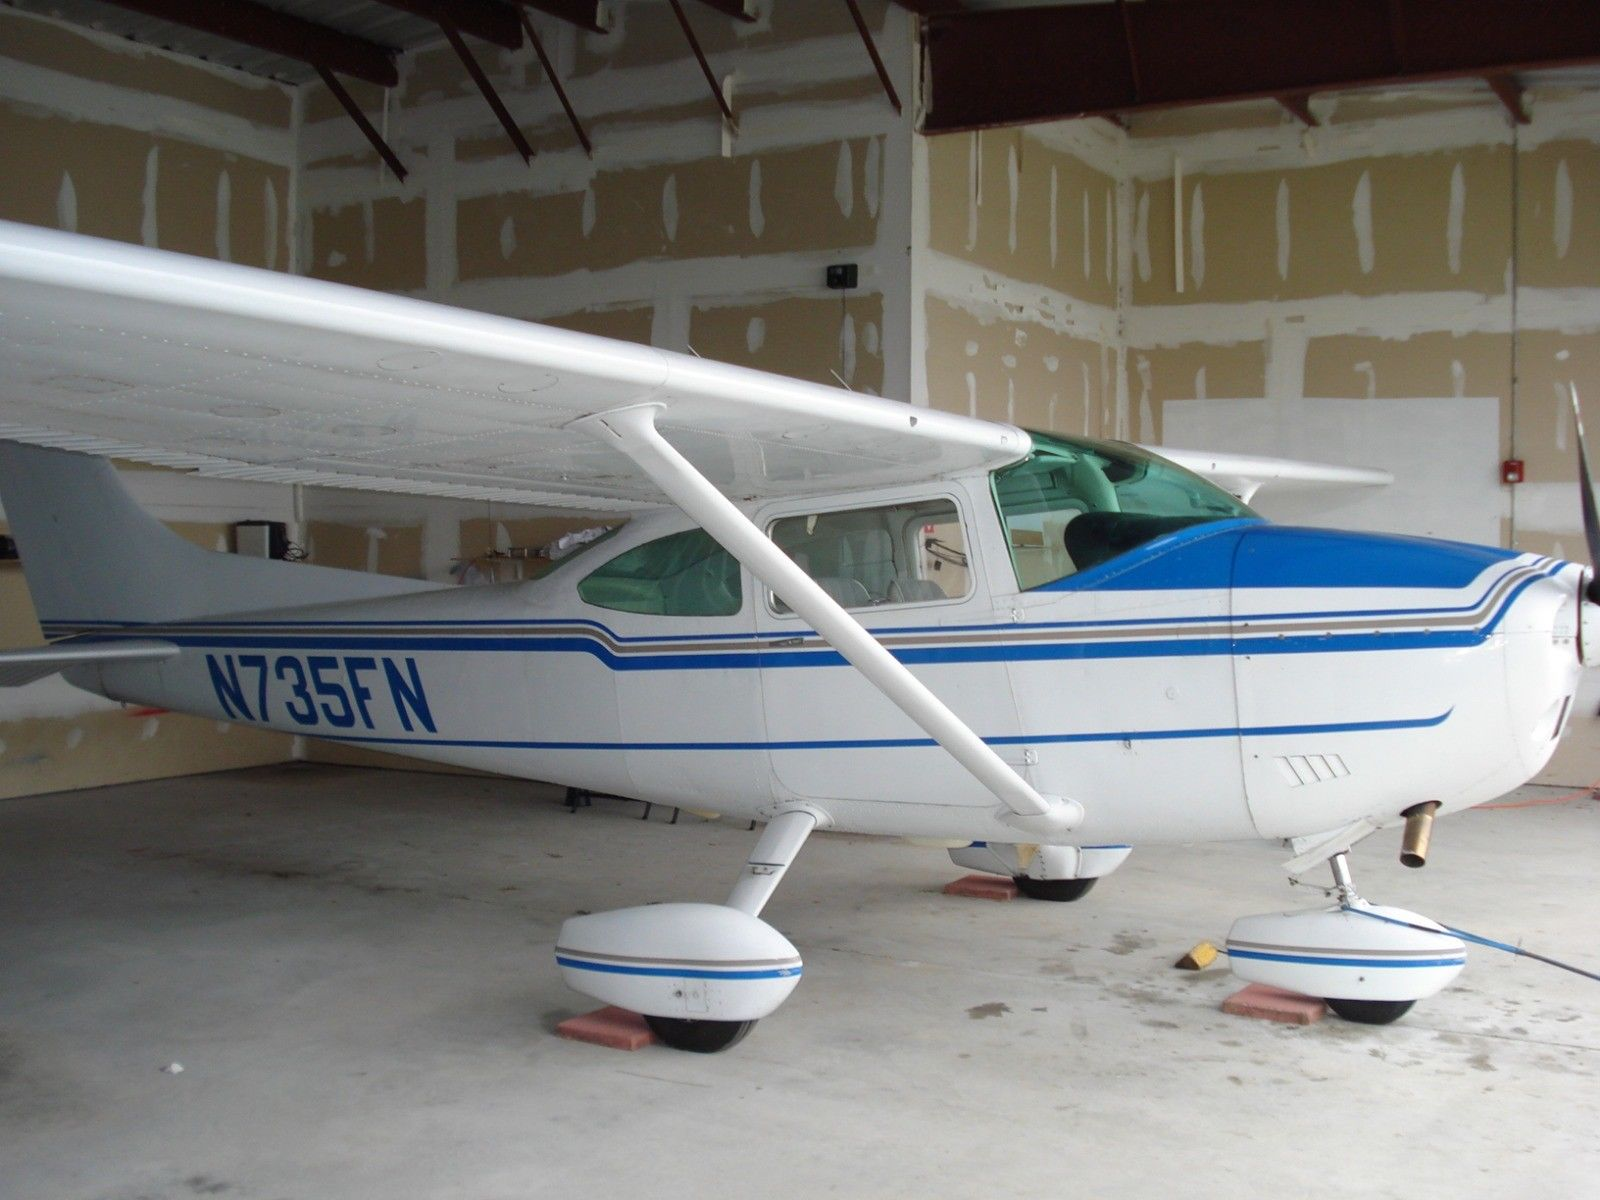 hangared 1977 Cessna 182Q aircraft for sale